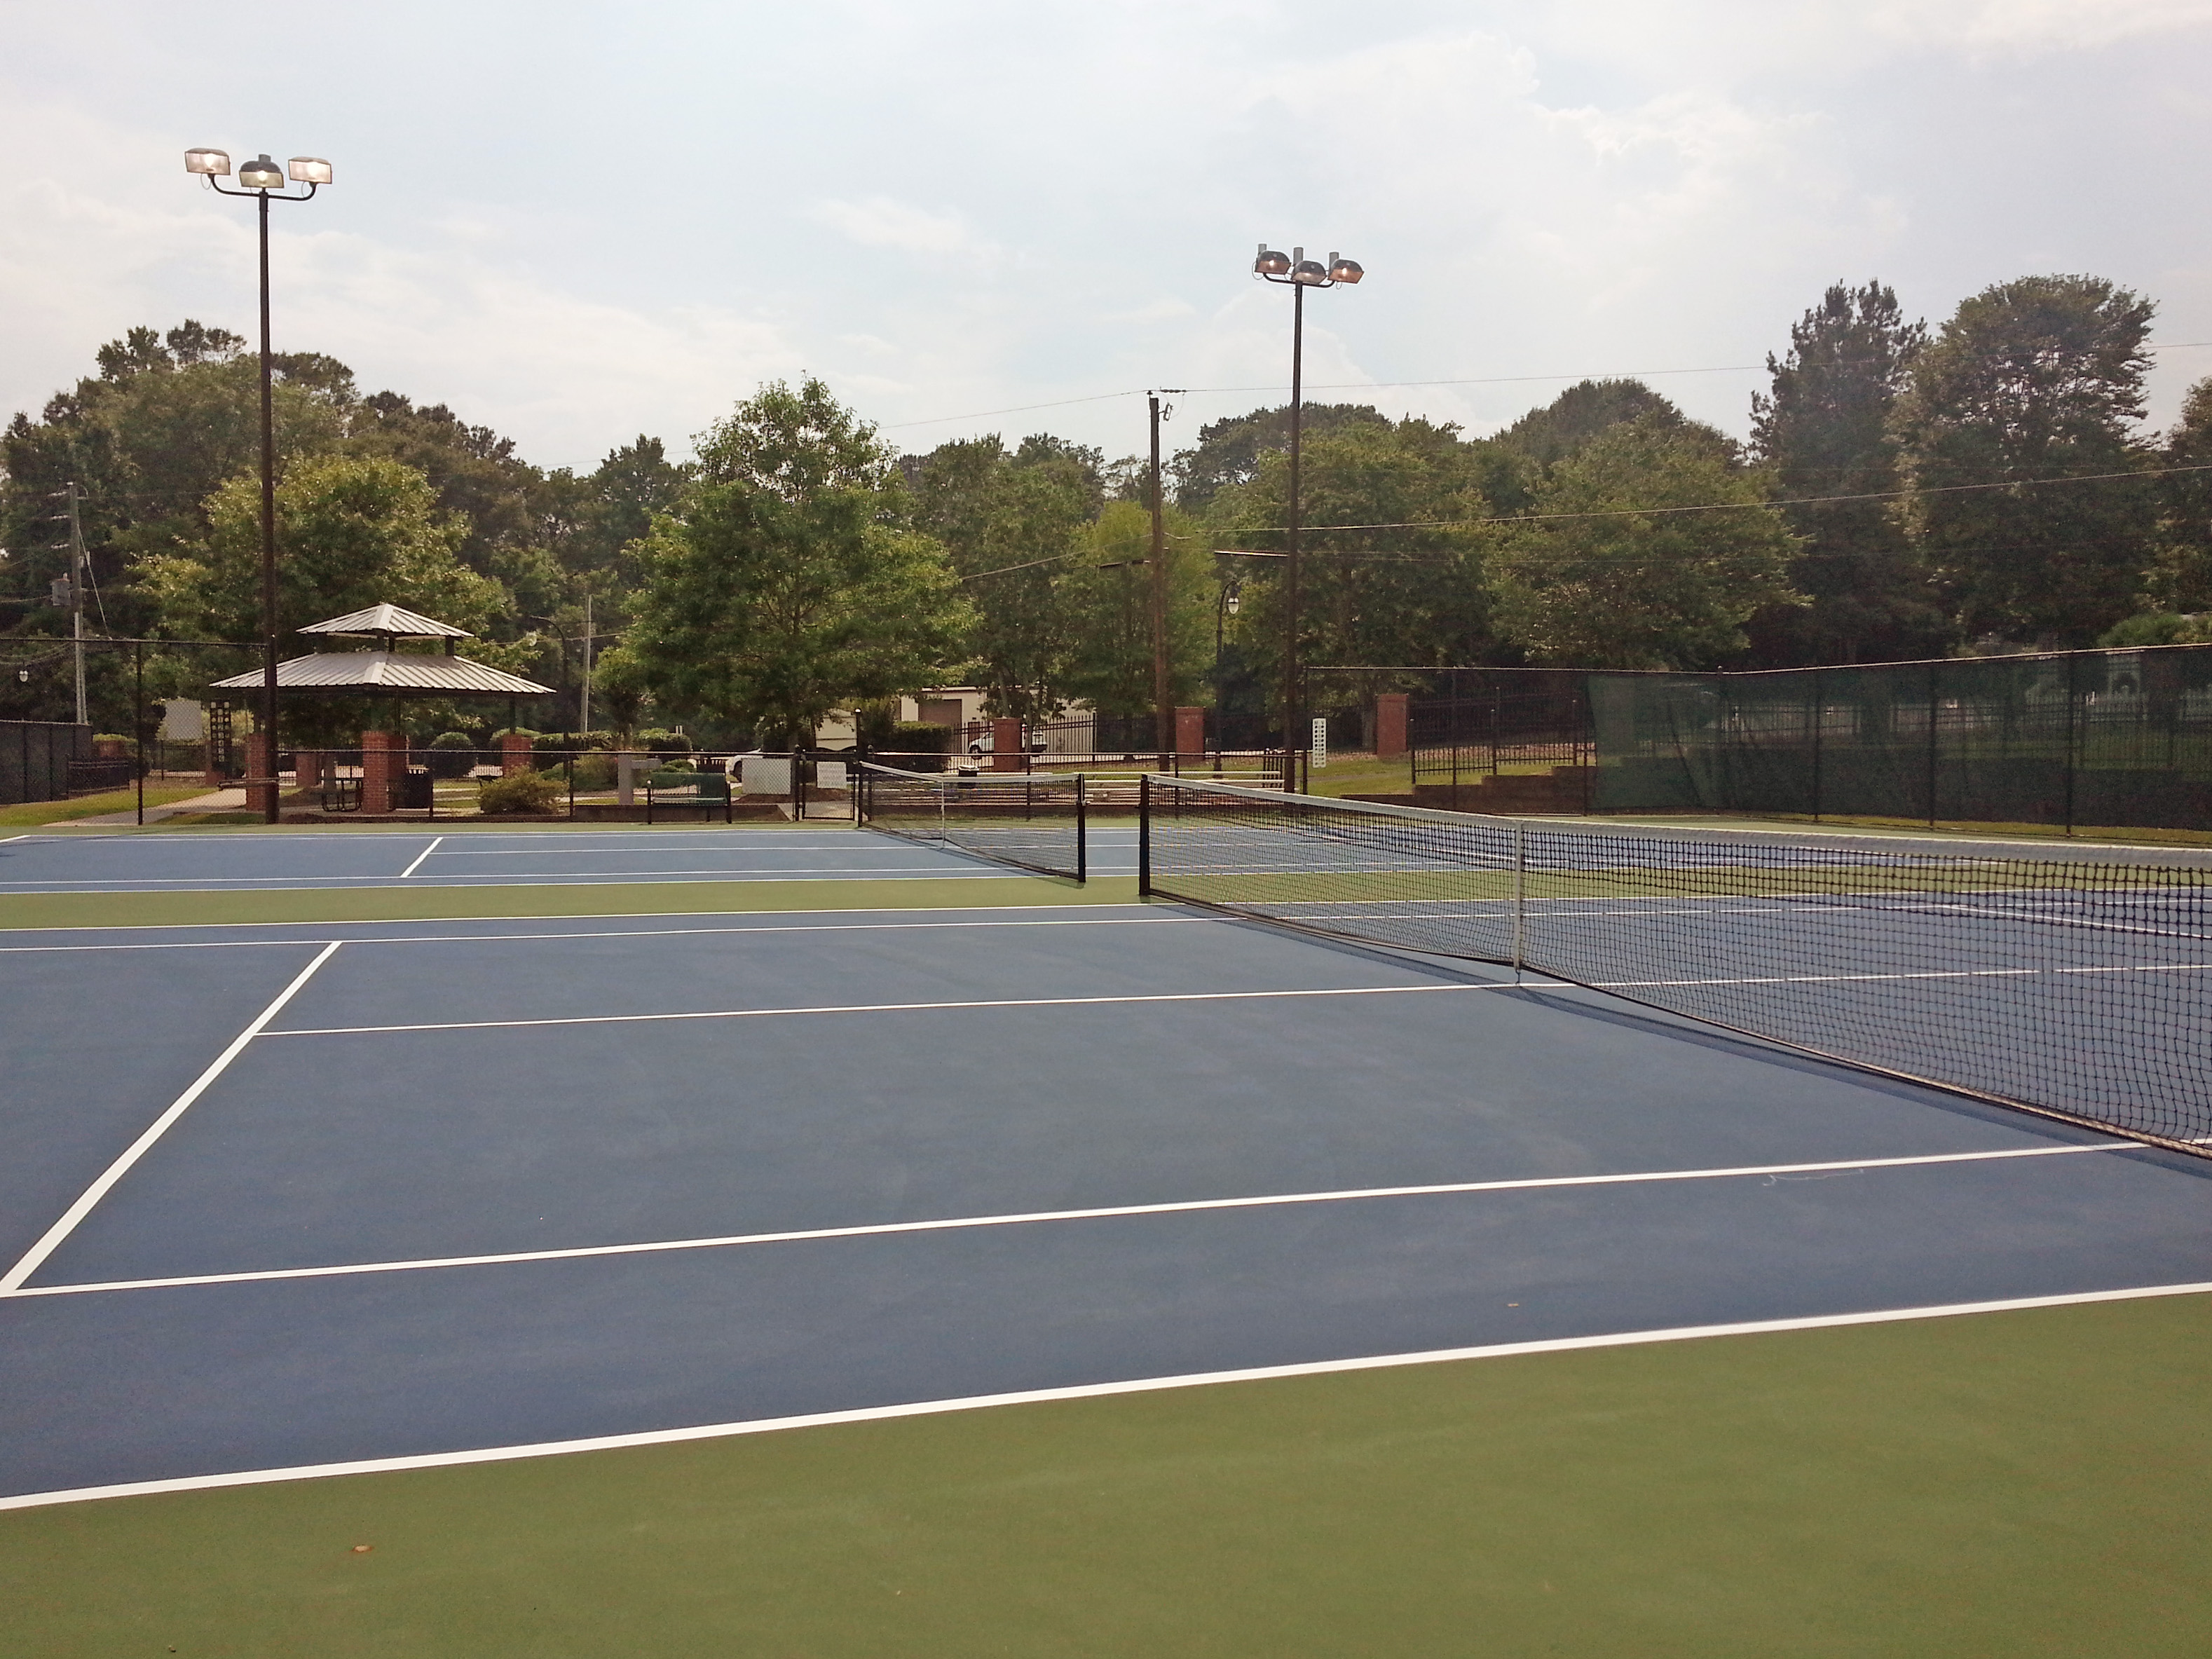 Tennis Courts resurfaced 2014 20140617_163525[1]